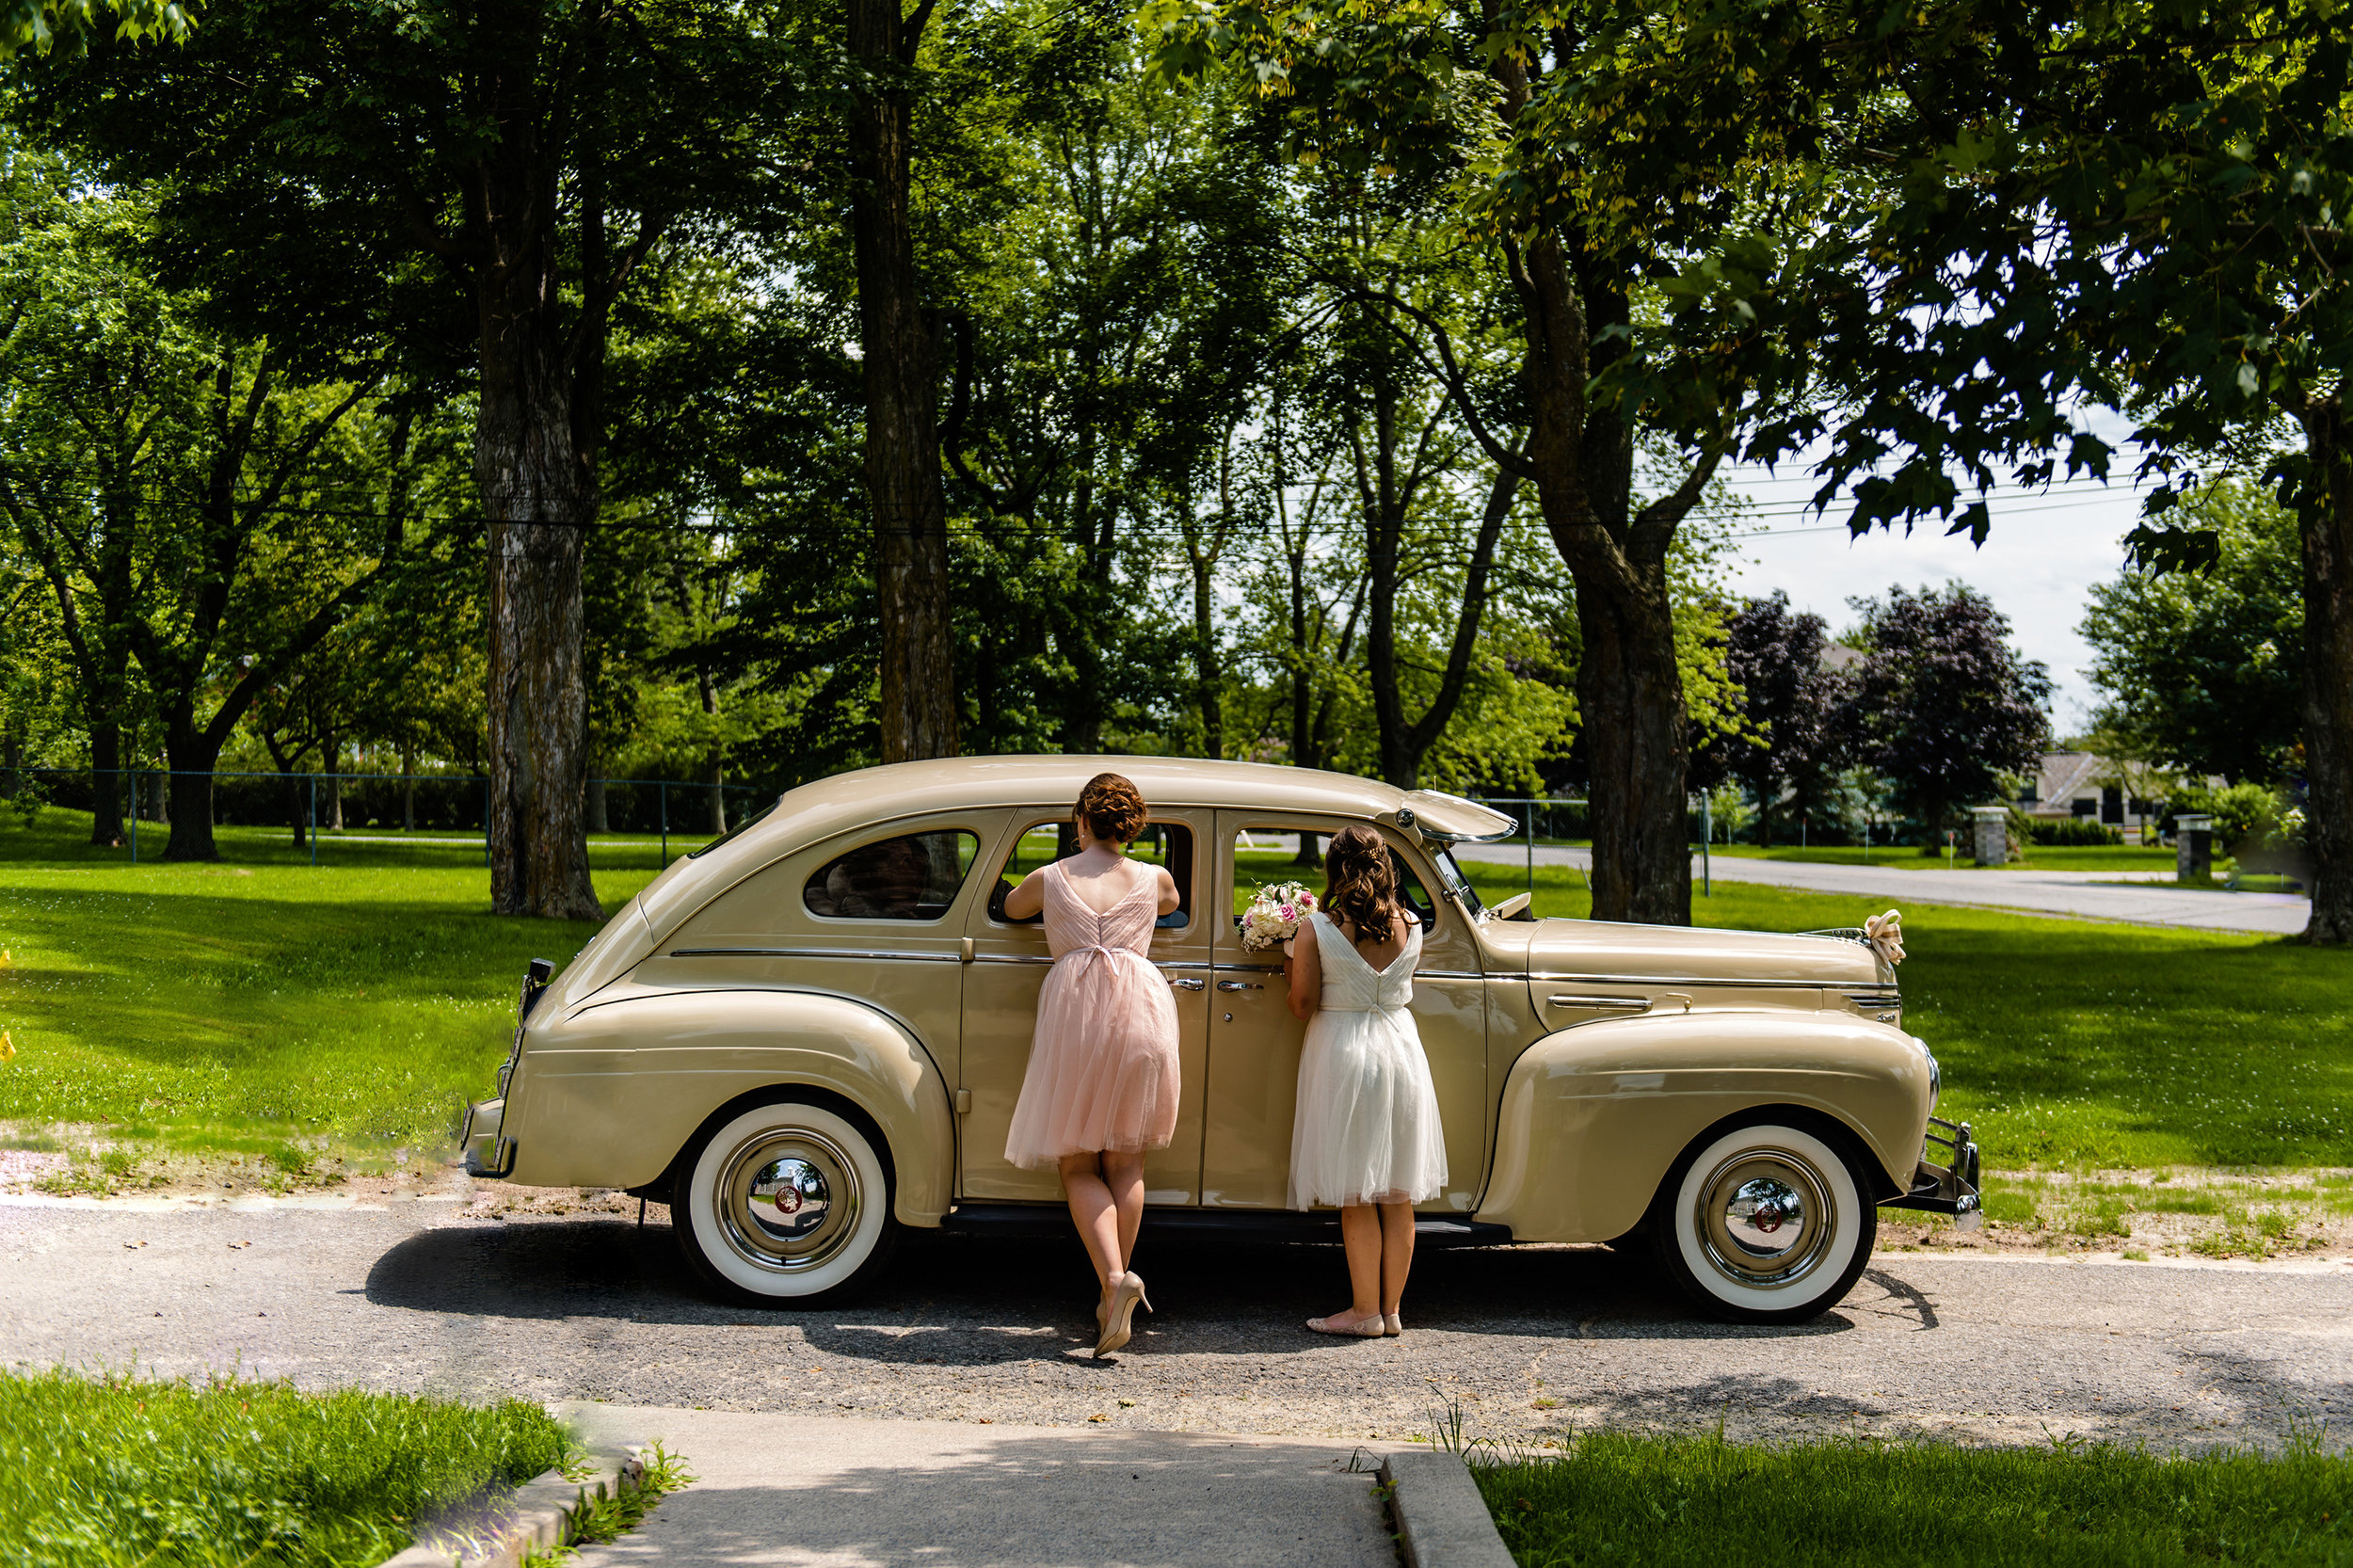 bridesmaid-and-flower-girl-look-into-limo-to-check-in-with-bride-before-a-st-patricks-wedding-in-richmond-ontario.jpg